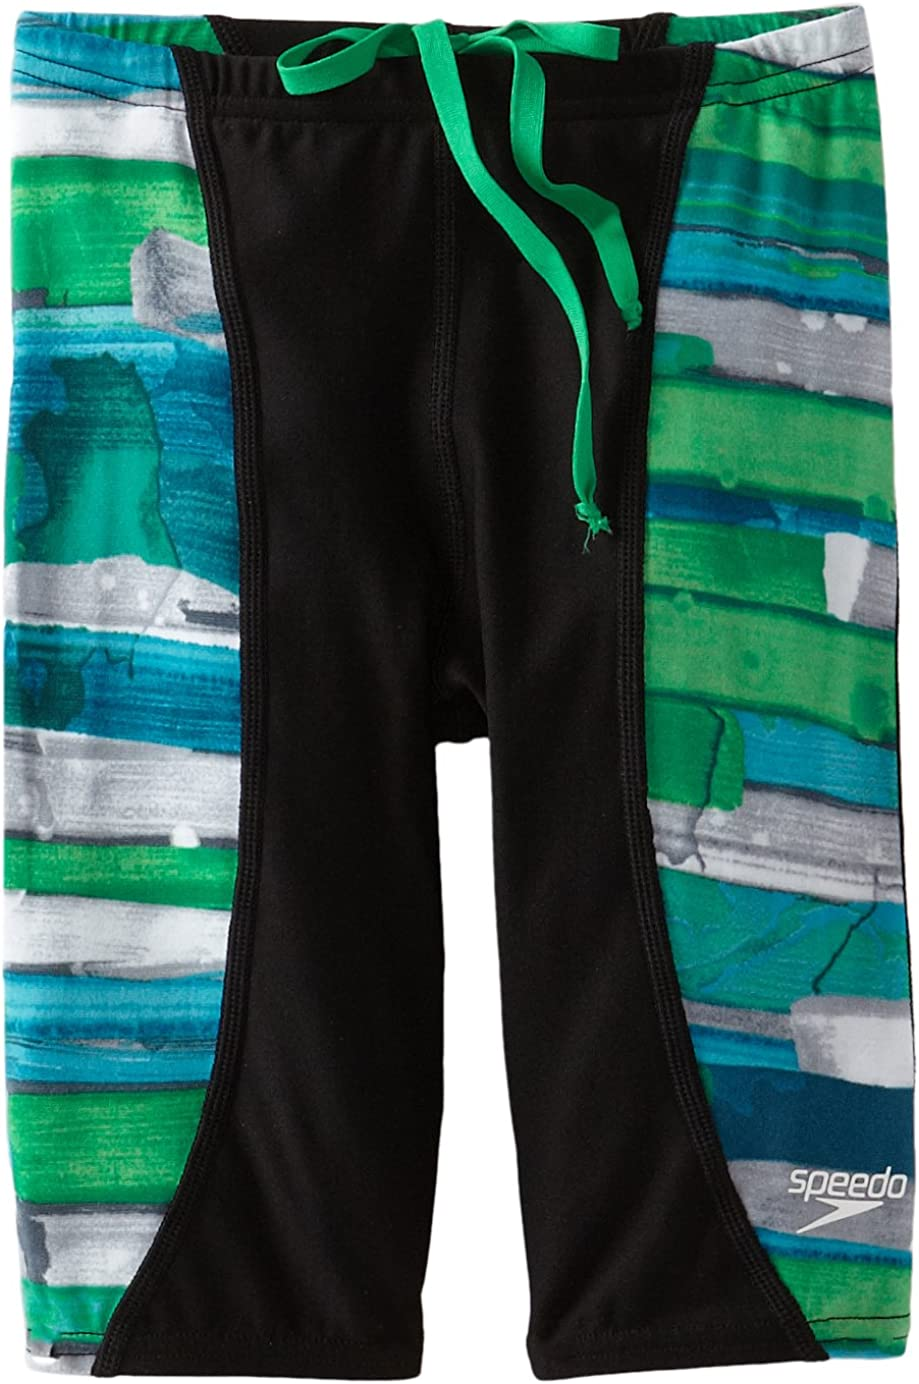 Speedo Big Boys' Purchase Max 72% OFF Youth Jammer Swimsuit Stroke Color